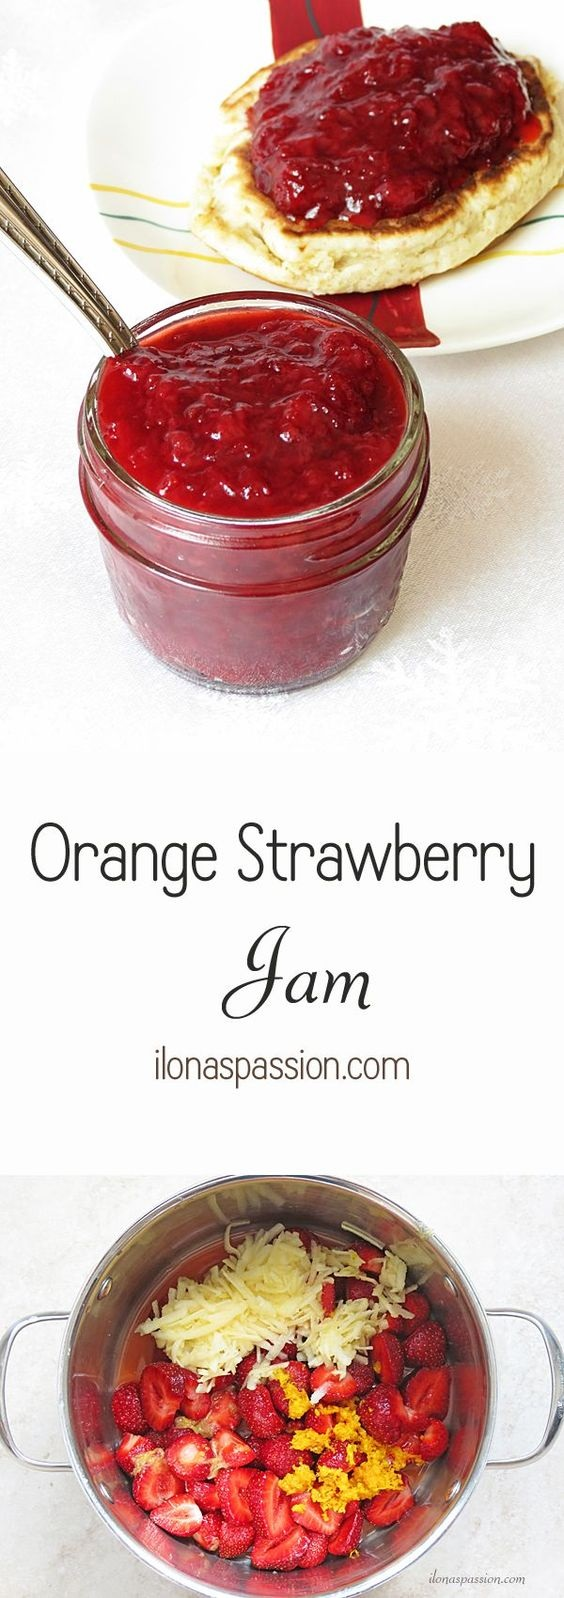 Orange Strawberry Jam